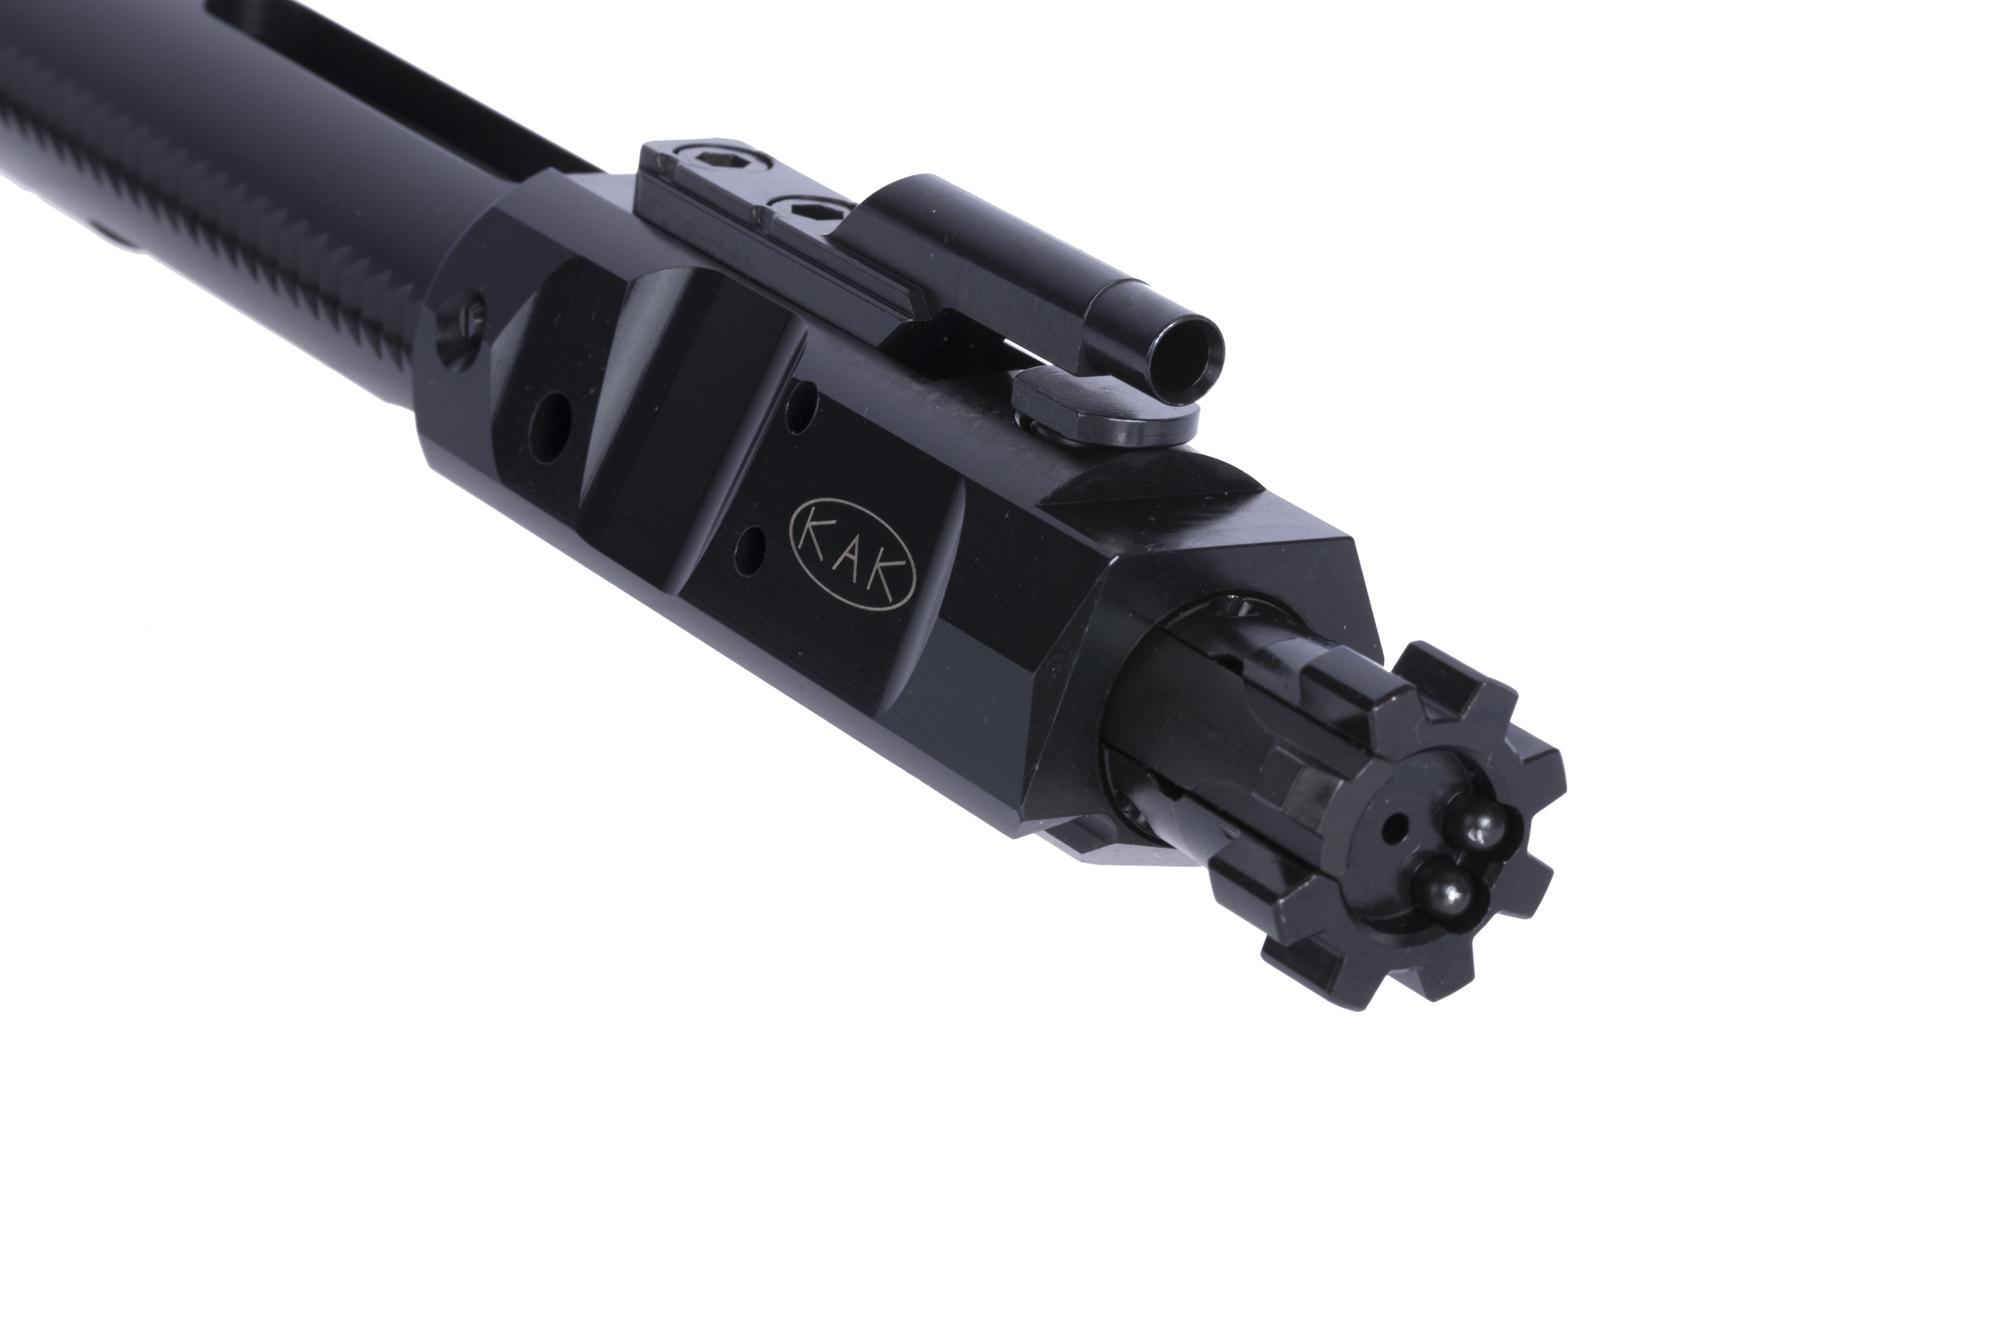 KAK Industry LR-308 Double Ejector Complete Bolt Carrier Group